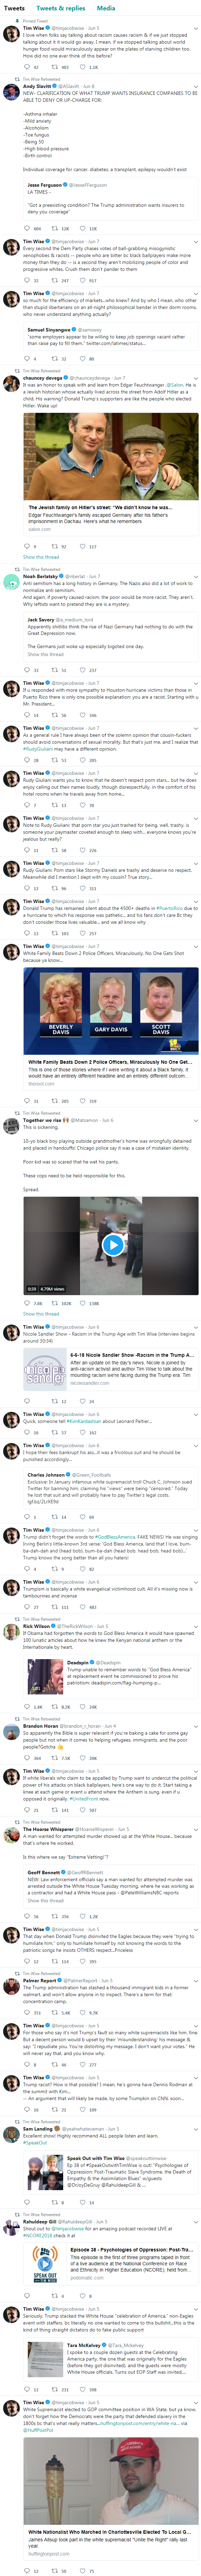 TimWise_Twitter_6-9-2018_1020PM.png